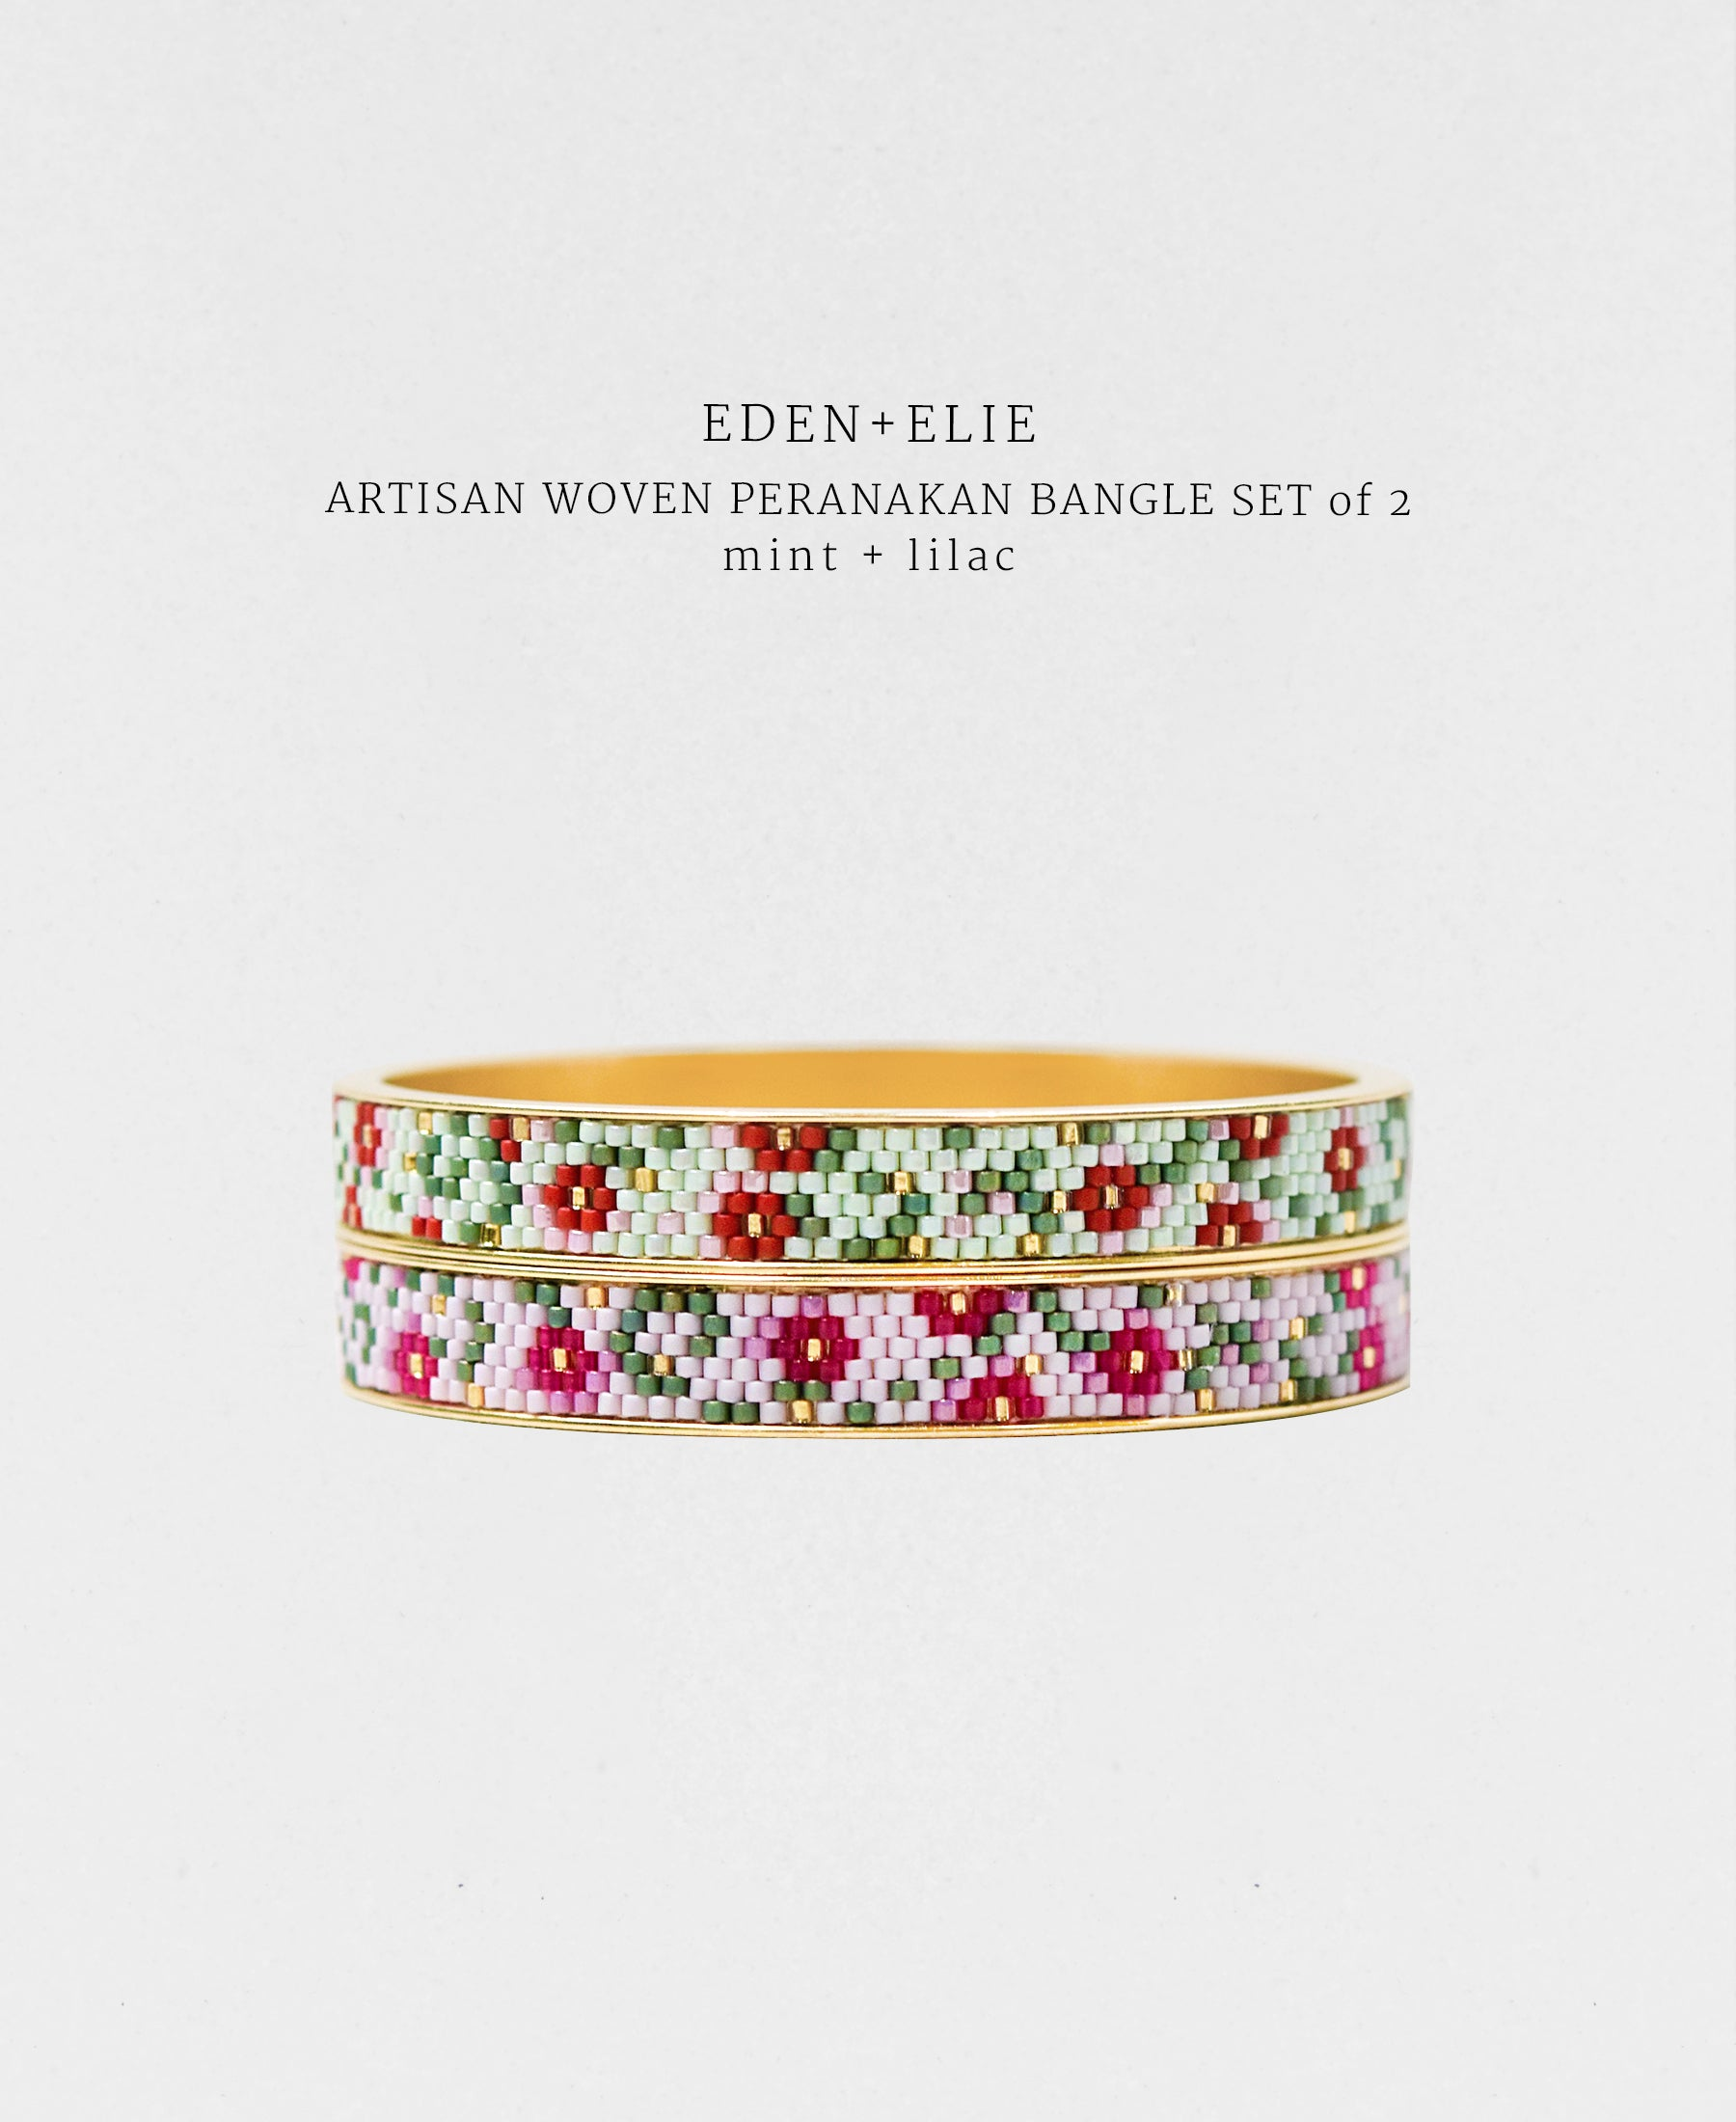 EDEN + ELIE Modern Peranakan gold narrow bangles set of 2 - mint + lilac